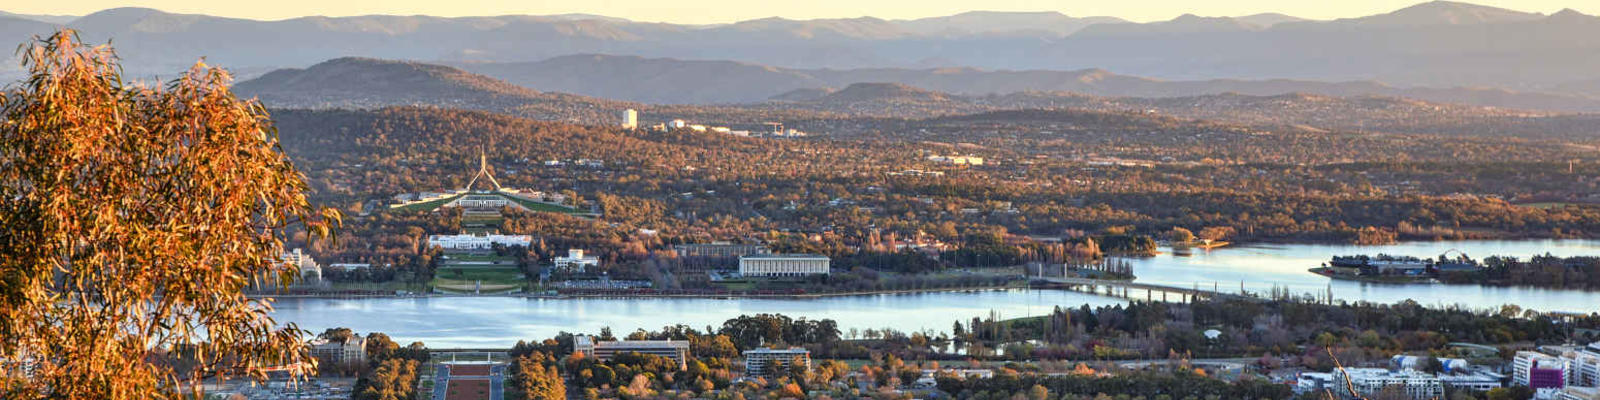 canberra sunset from mount ainslie